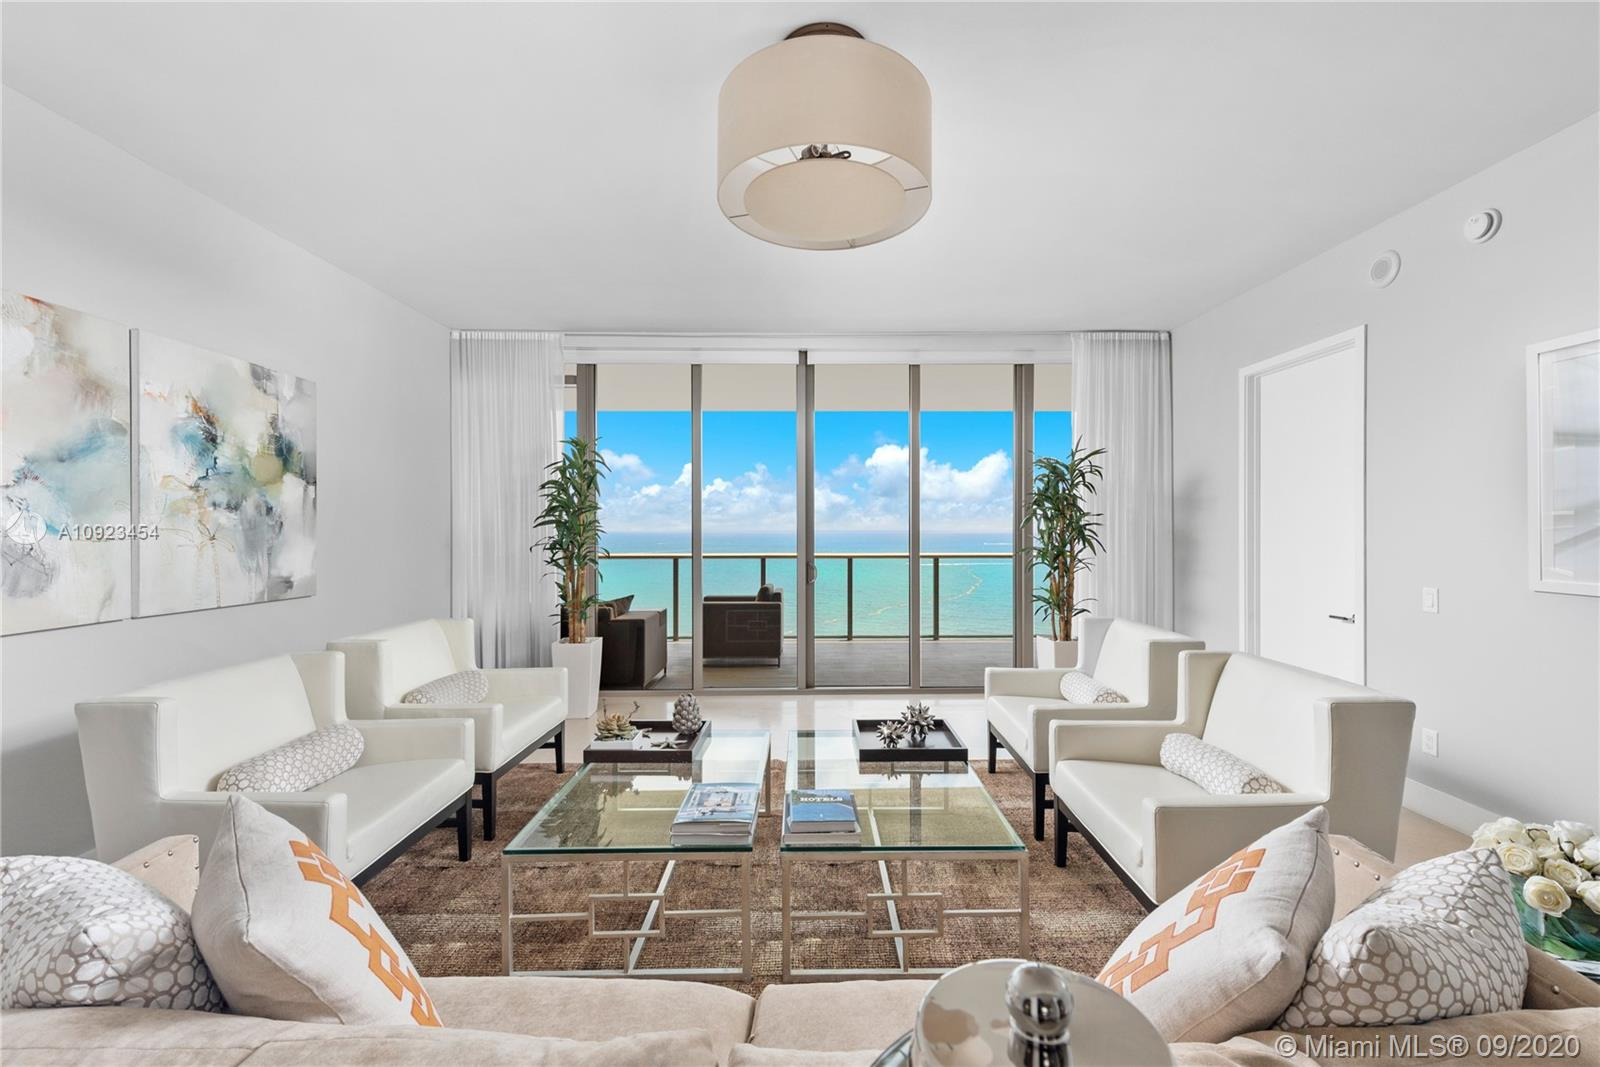 A stunning three bedroom unit at the St Regis Resort in Bal Harbour. This high floor unit has direct pristine ocean and bay views which can be enjoyed from floor-to-ceiling windows and large balcony. Offering a 3,424 sq ft interior, this flow-through floor plan features 36-inch marble floors and electric blinds throughout and is ready for occupancy. Enjoy a vacation lifestyle in Miami's only 5-star oceanfront hotel/residence with top tier resort-style amenities and unparalleled service. St. Regis is COVID-compliant and offers endless opportunities to indulge and create your own resort lifestyle experience.